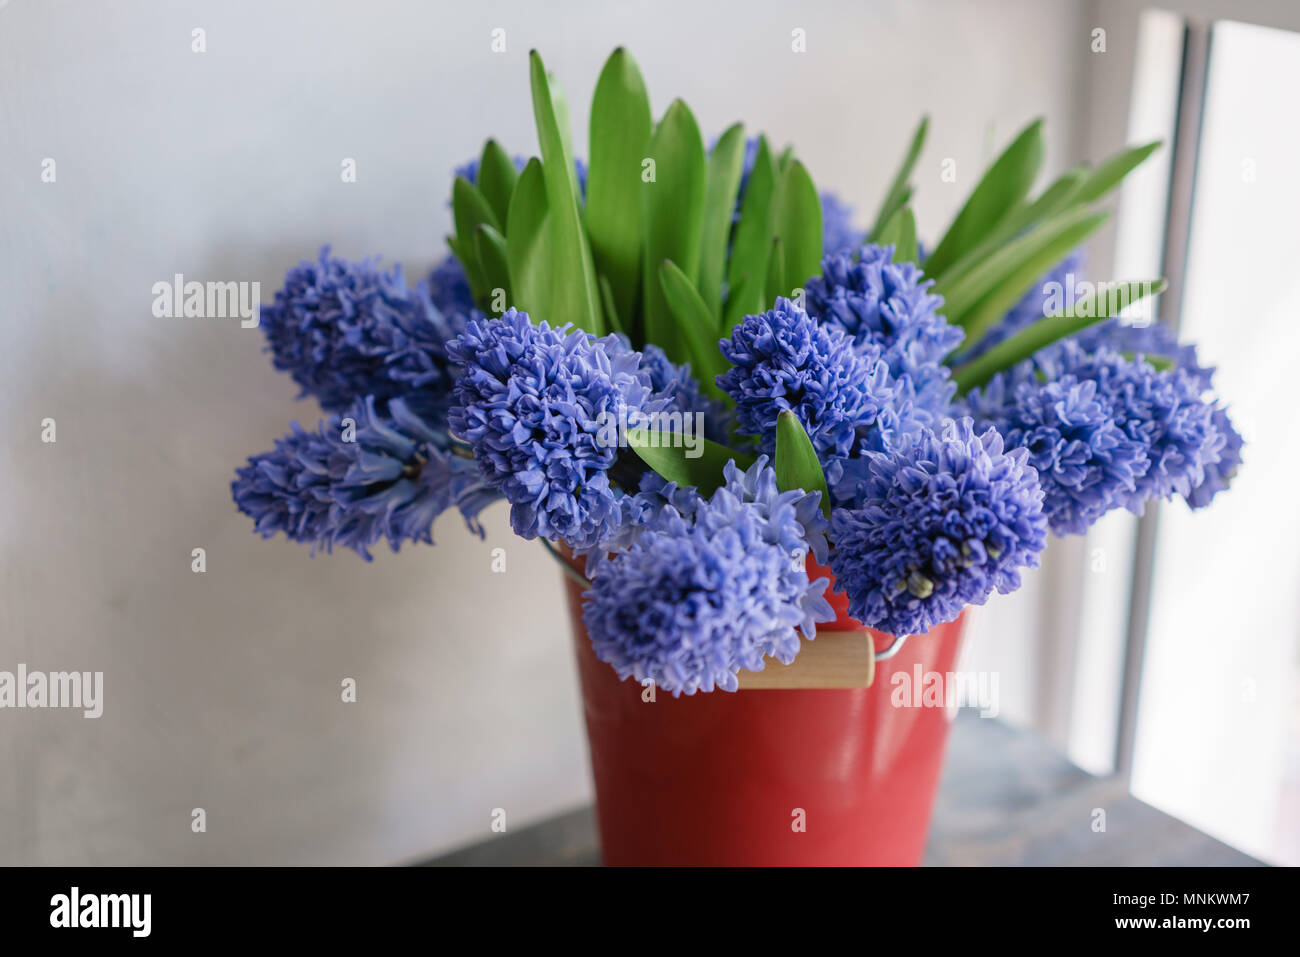 Bouquet Of Beautiful Blue Hyacinths Close Up Spring Flowers In Red Vase Bulbous Plant Floral Wallpaper